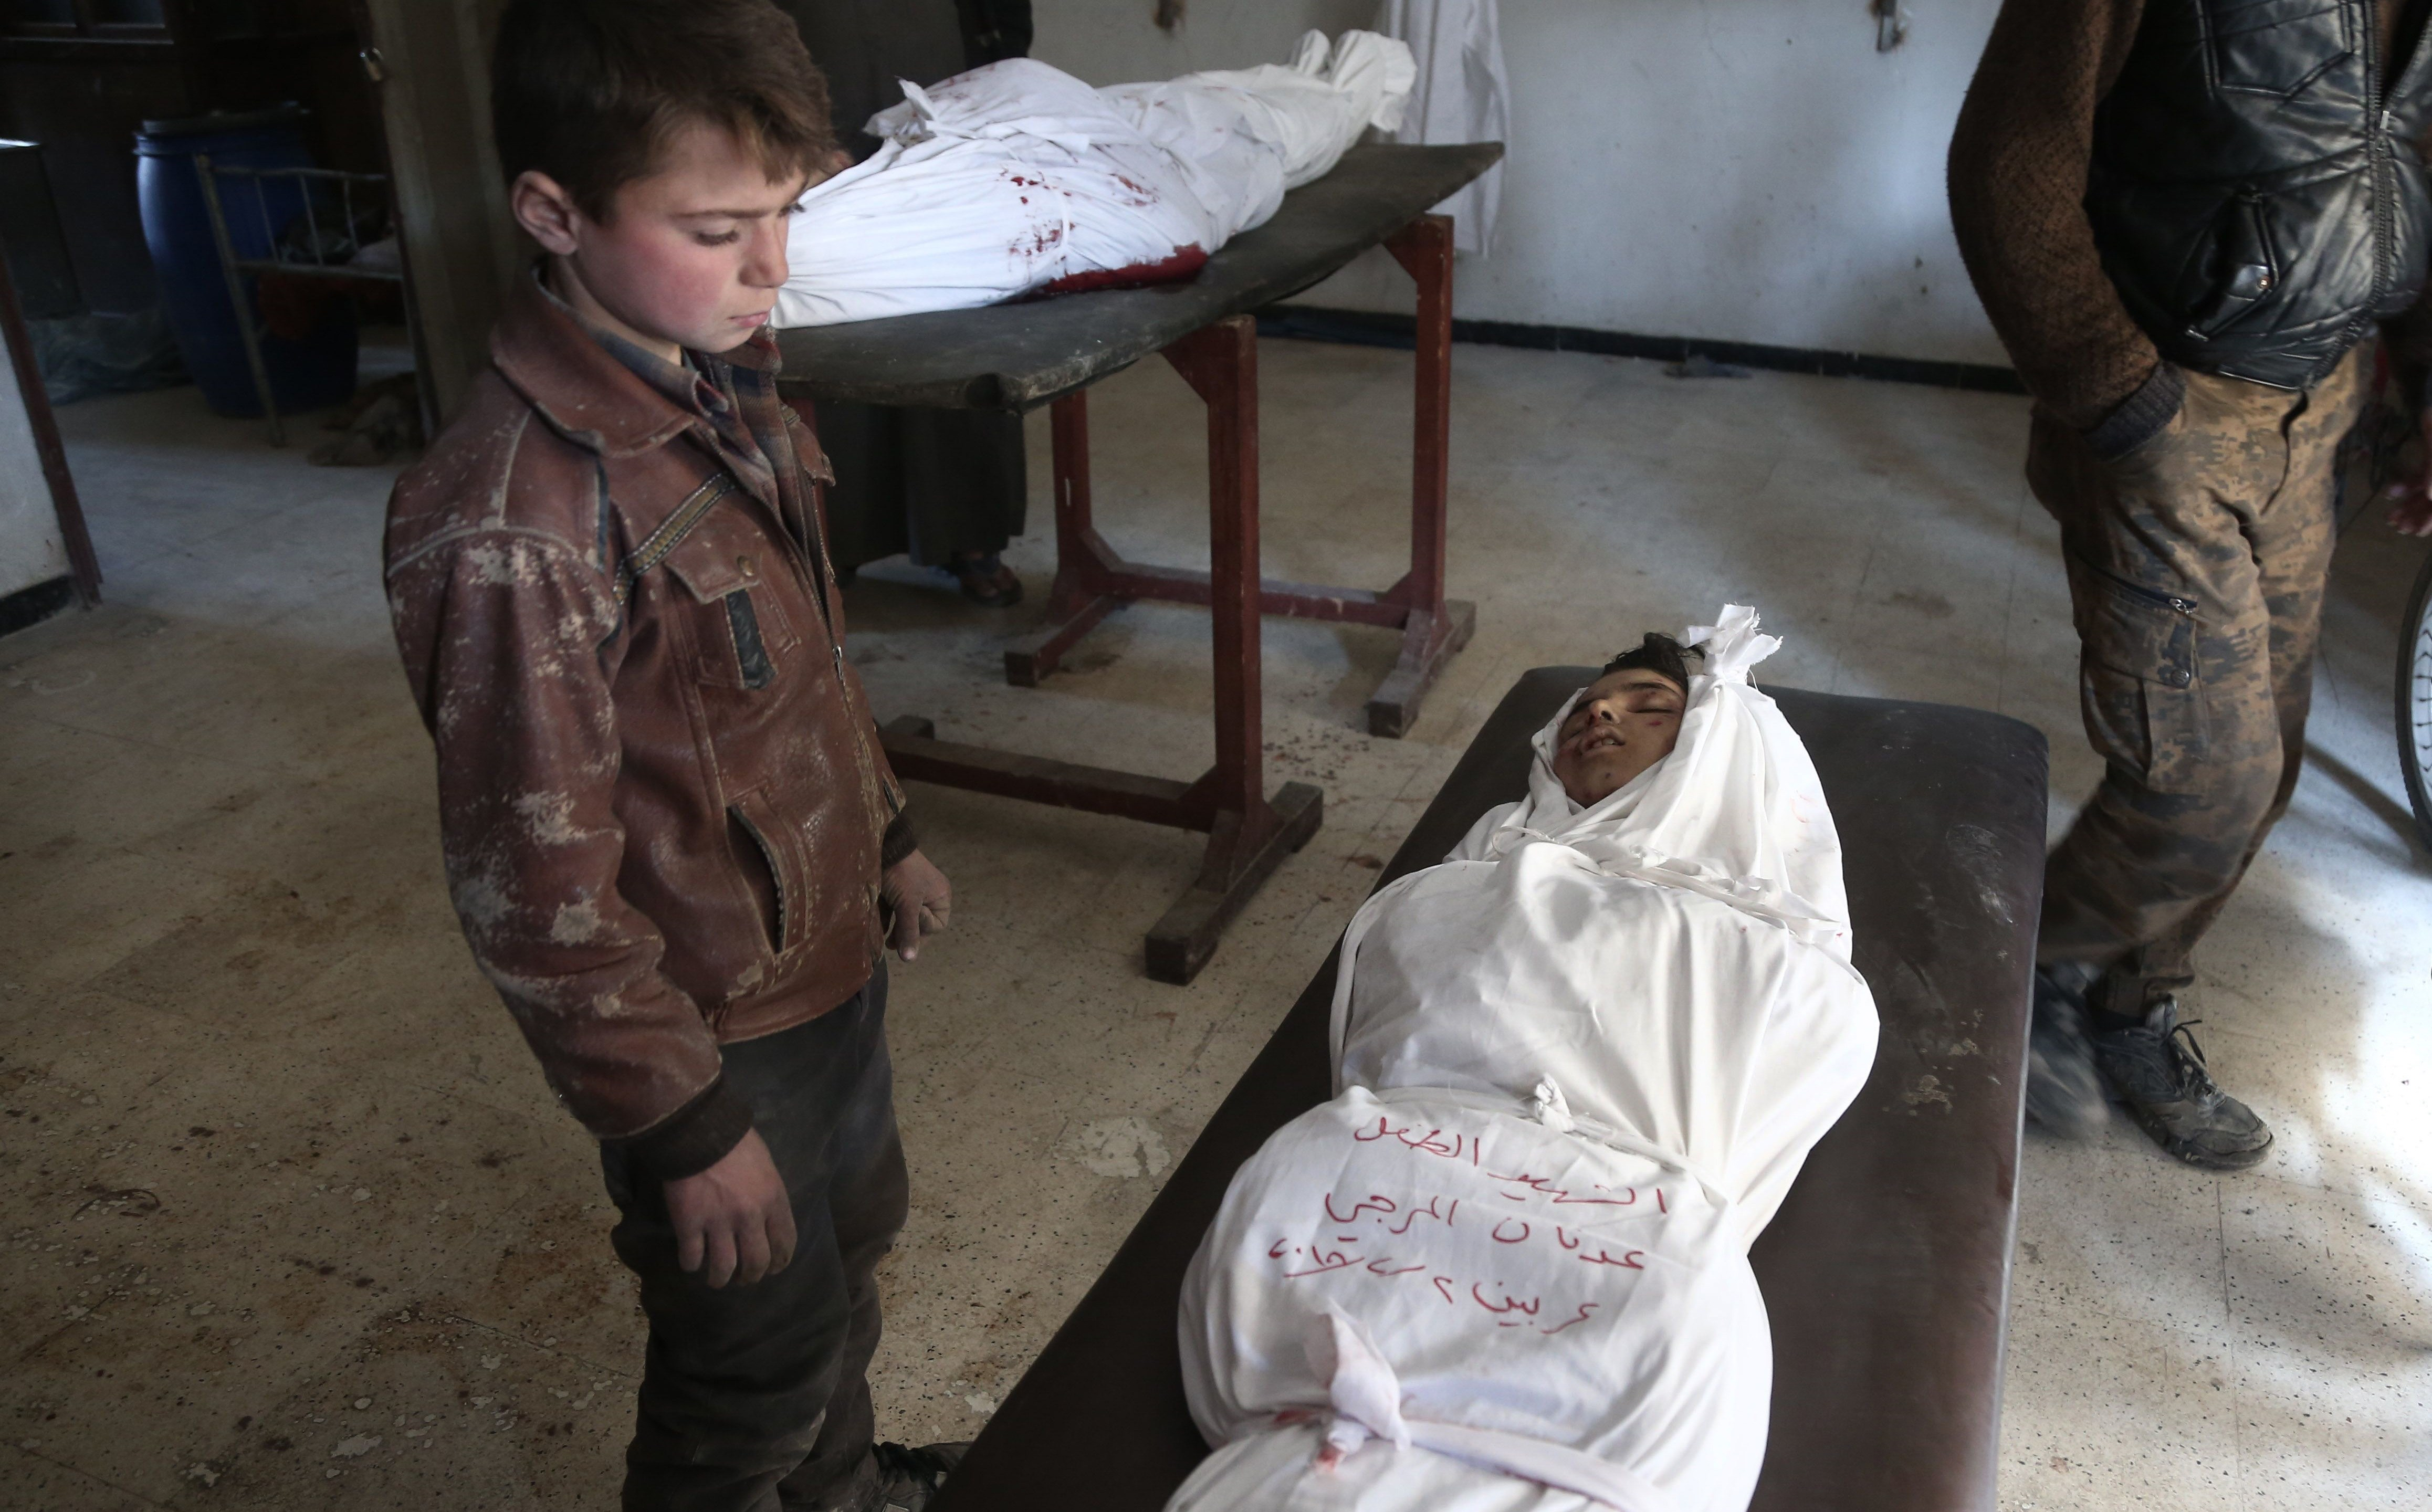 A Syrian child stands over the body of a child in a makeshift hospital following an airstrike on the rebel-held town of Arbin, in eastern Ghouta on Friday. Photo: Abdulmonam Eassa/AFP